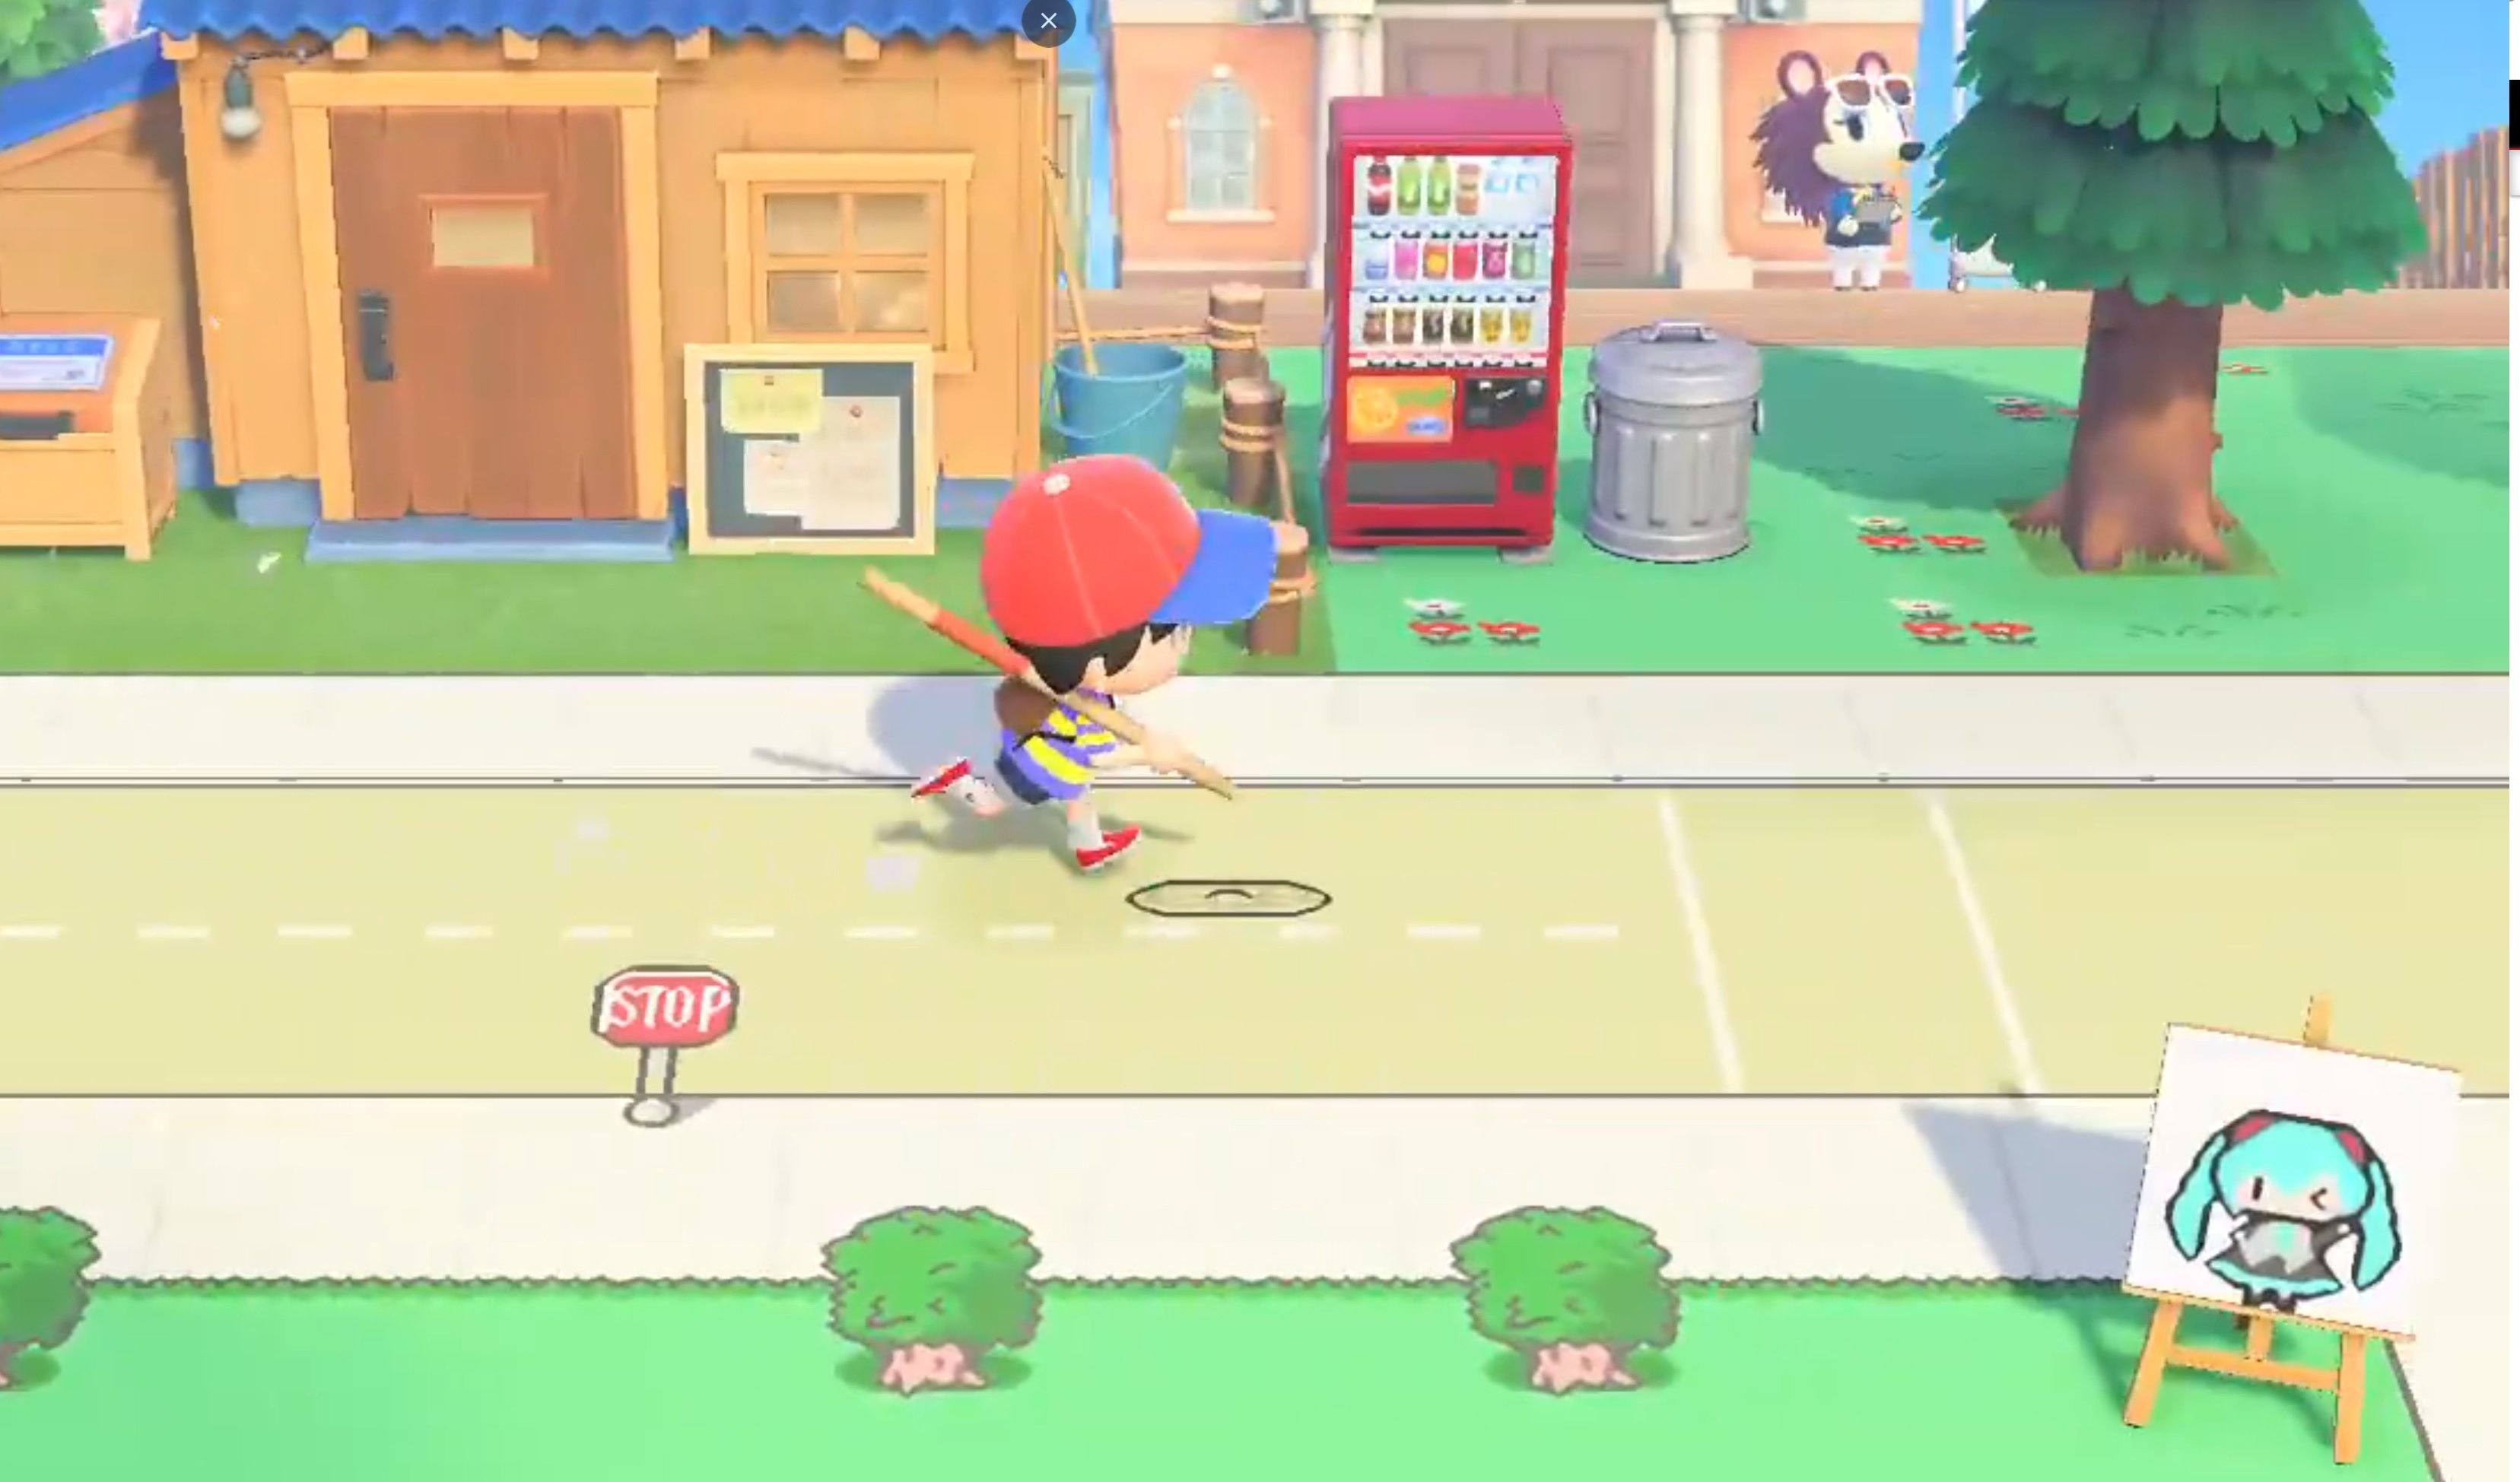 This Earthbound recreation in Animal Crossing: New Horizons looks incredible screenshot